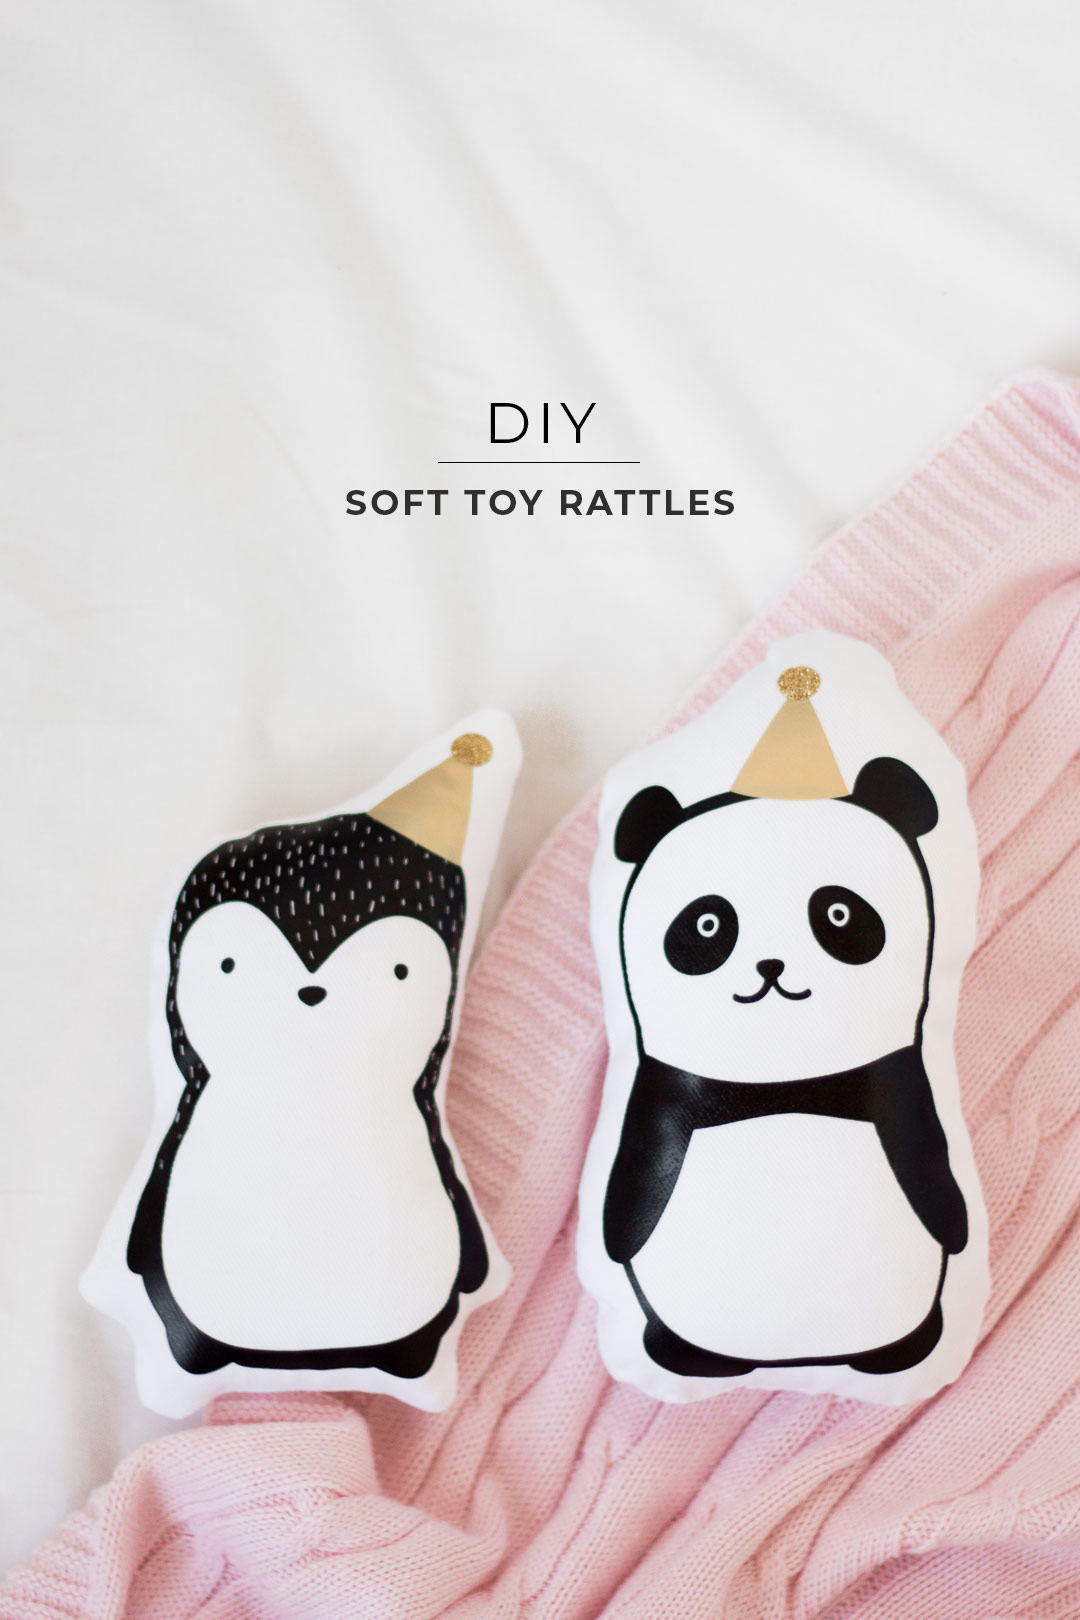 Free Silhouette Cut File for Cute Penguin and Panda Plushie Soft Toy Rattle from Pure Sweet Joy